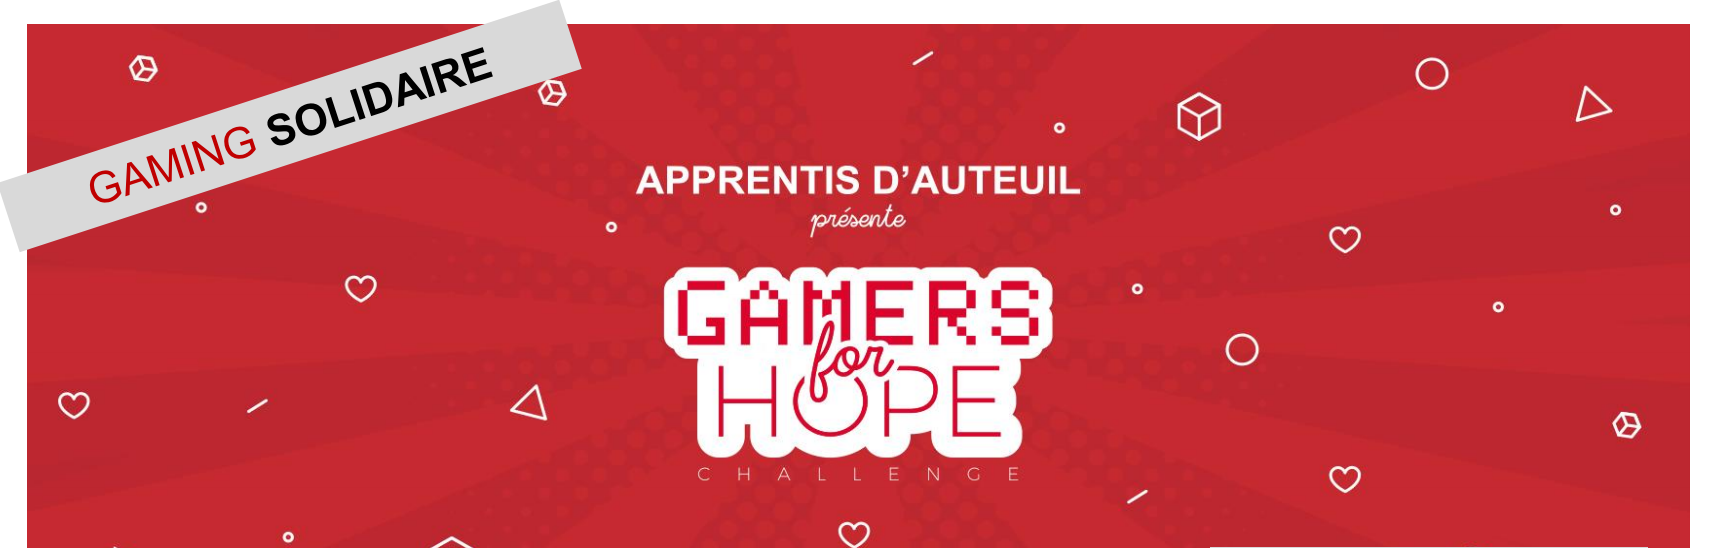 Gaming Solidaire